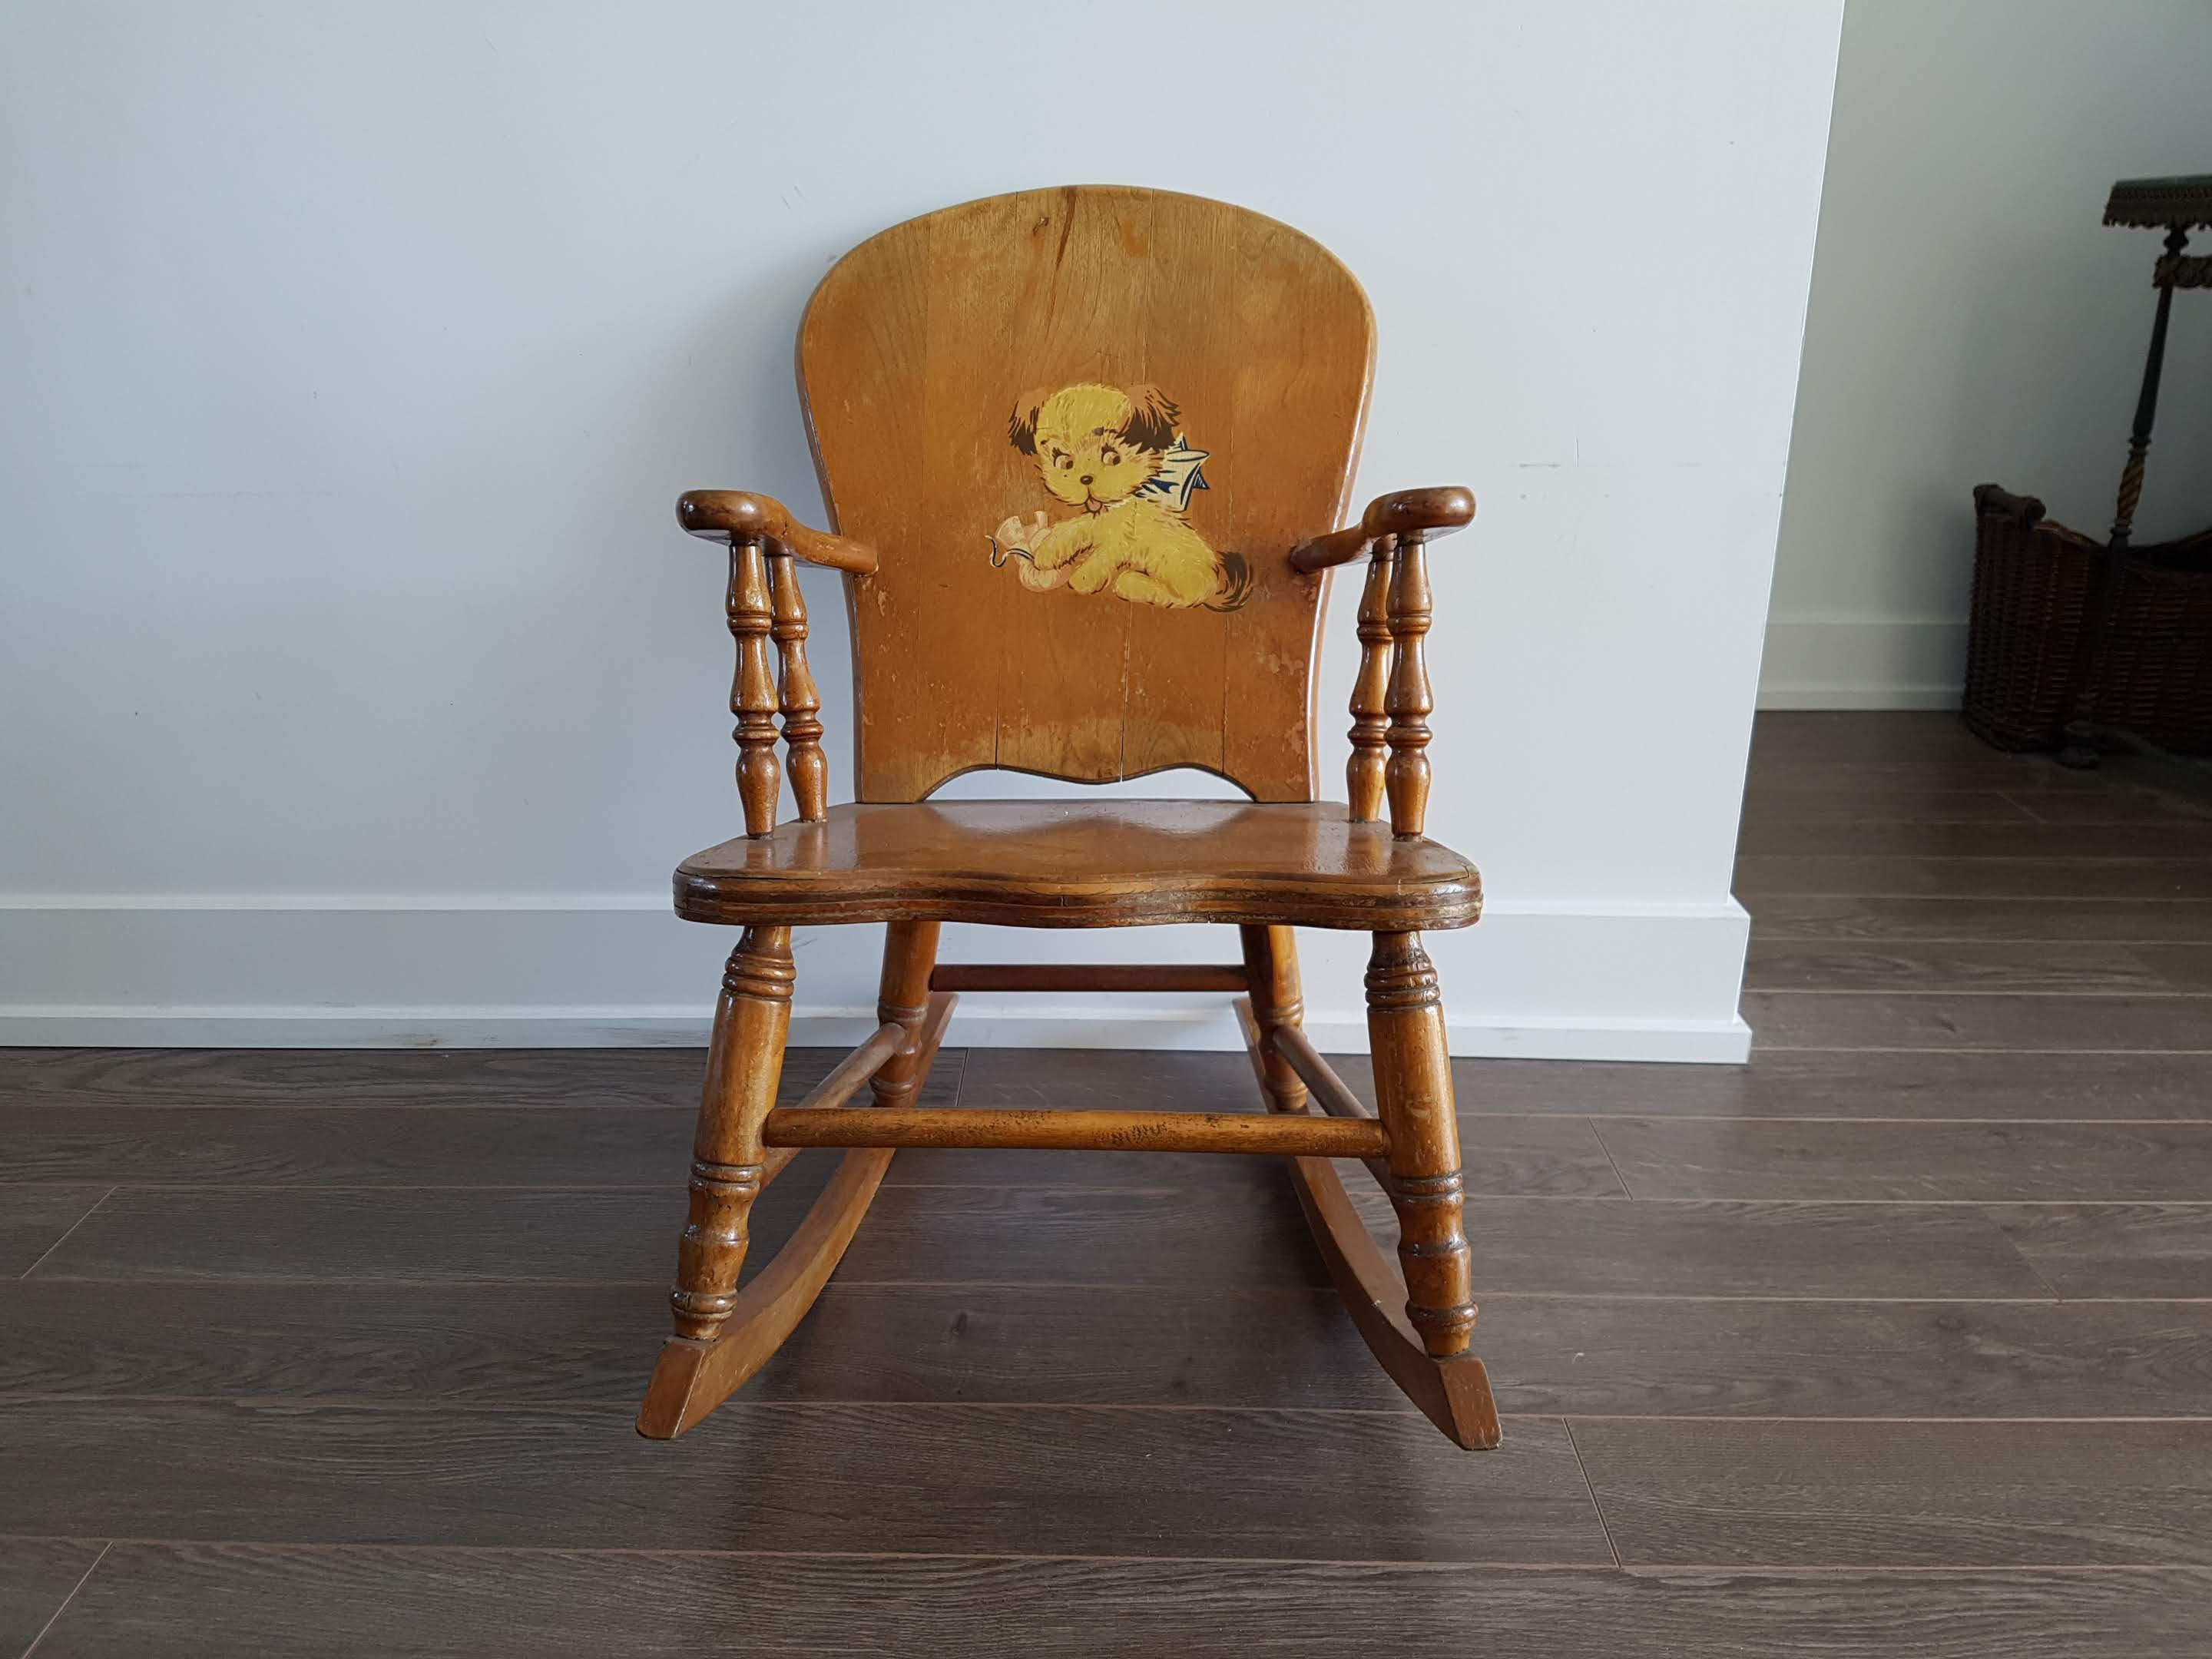 Wooden Rocking Chair For Nursery Vintage 40s Child S Wooden Rocking Chair Puppy Dog Nursery Decor Unique Baby Shower Gift Boy Girl Retro Kid S Toddler Bedroom Furniture Prop